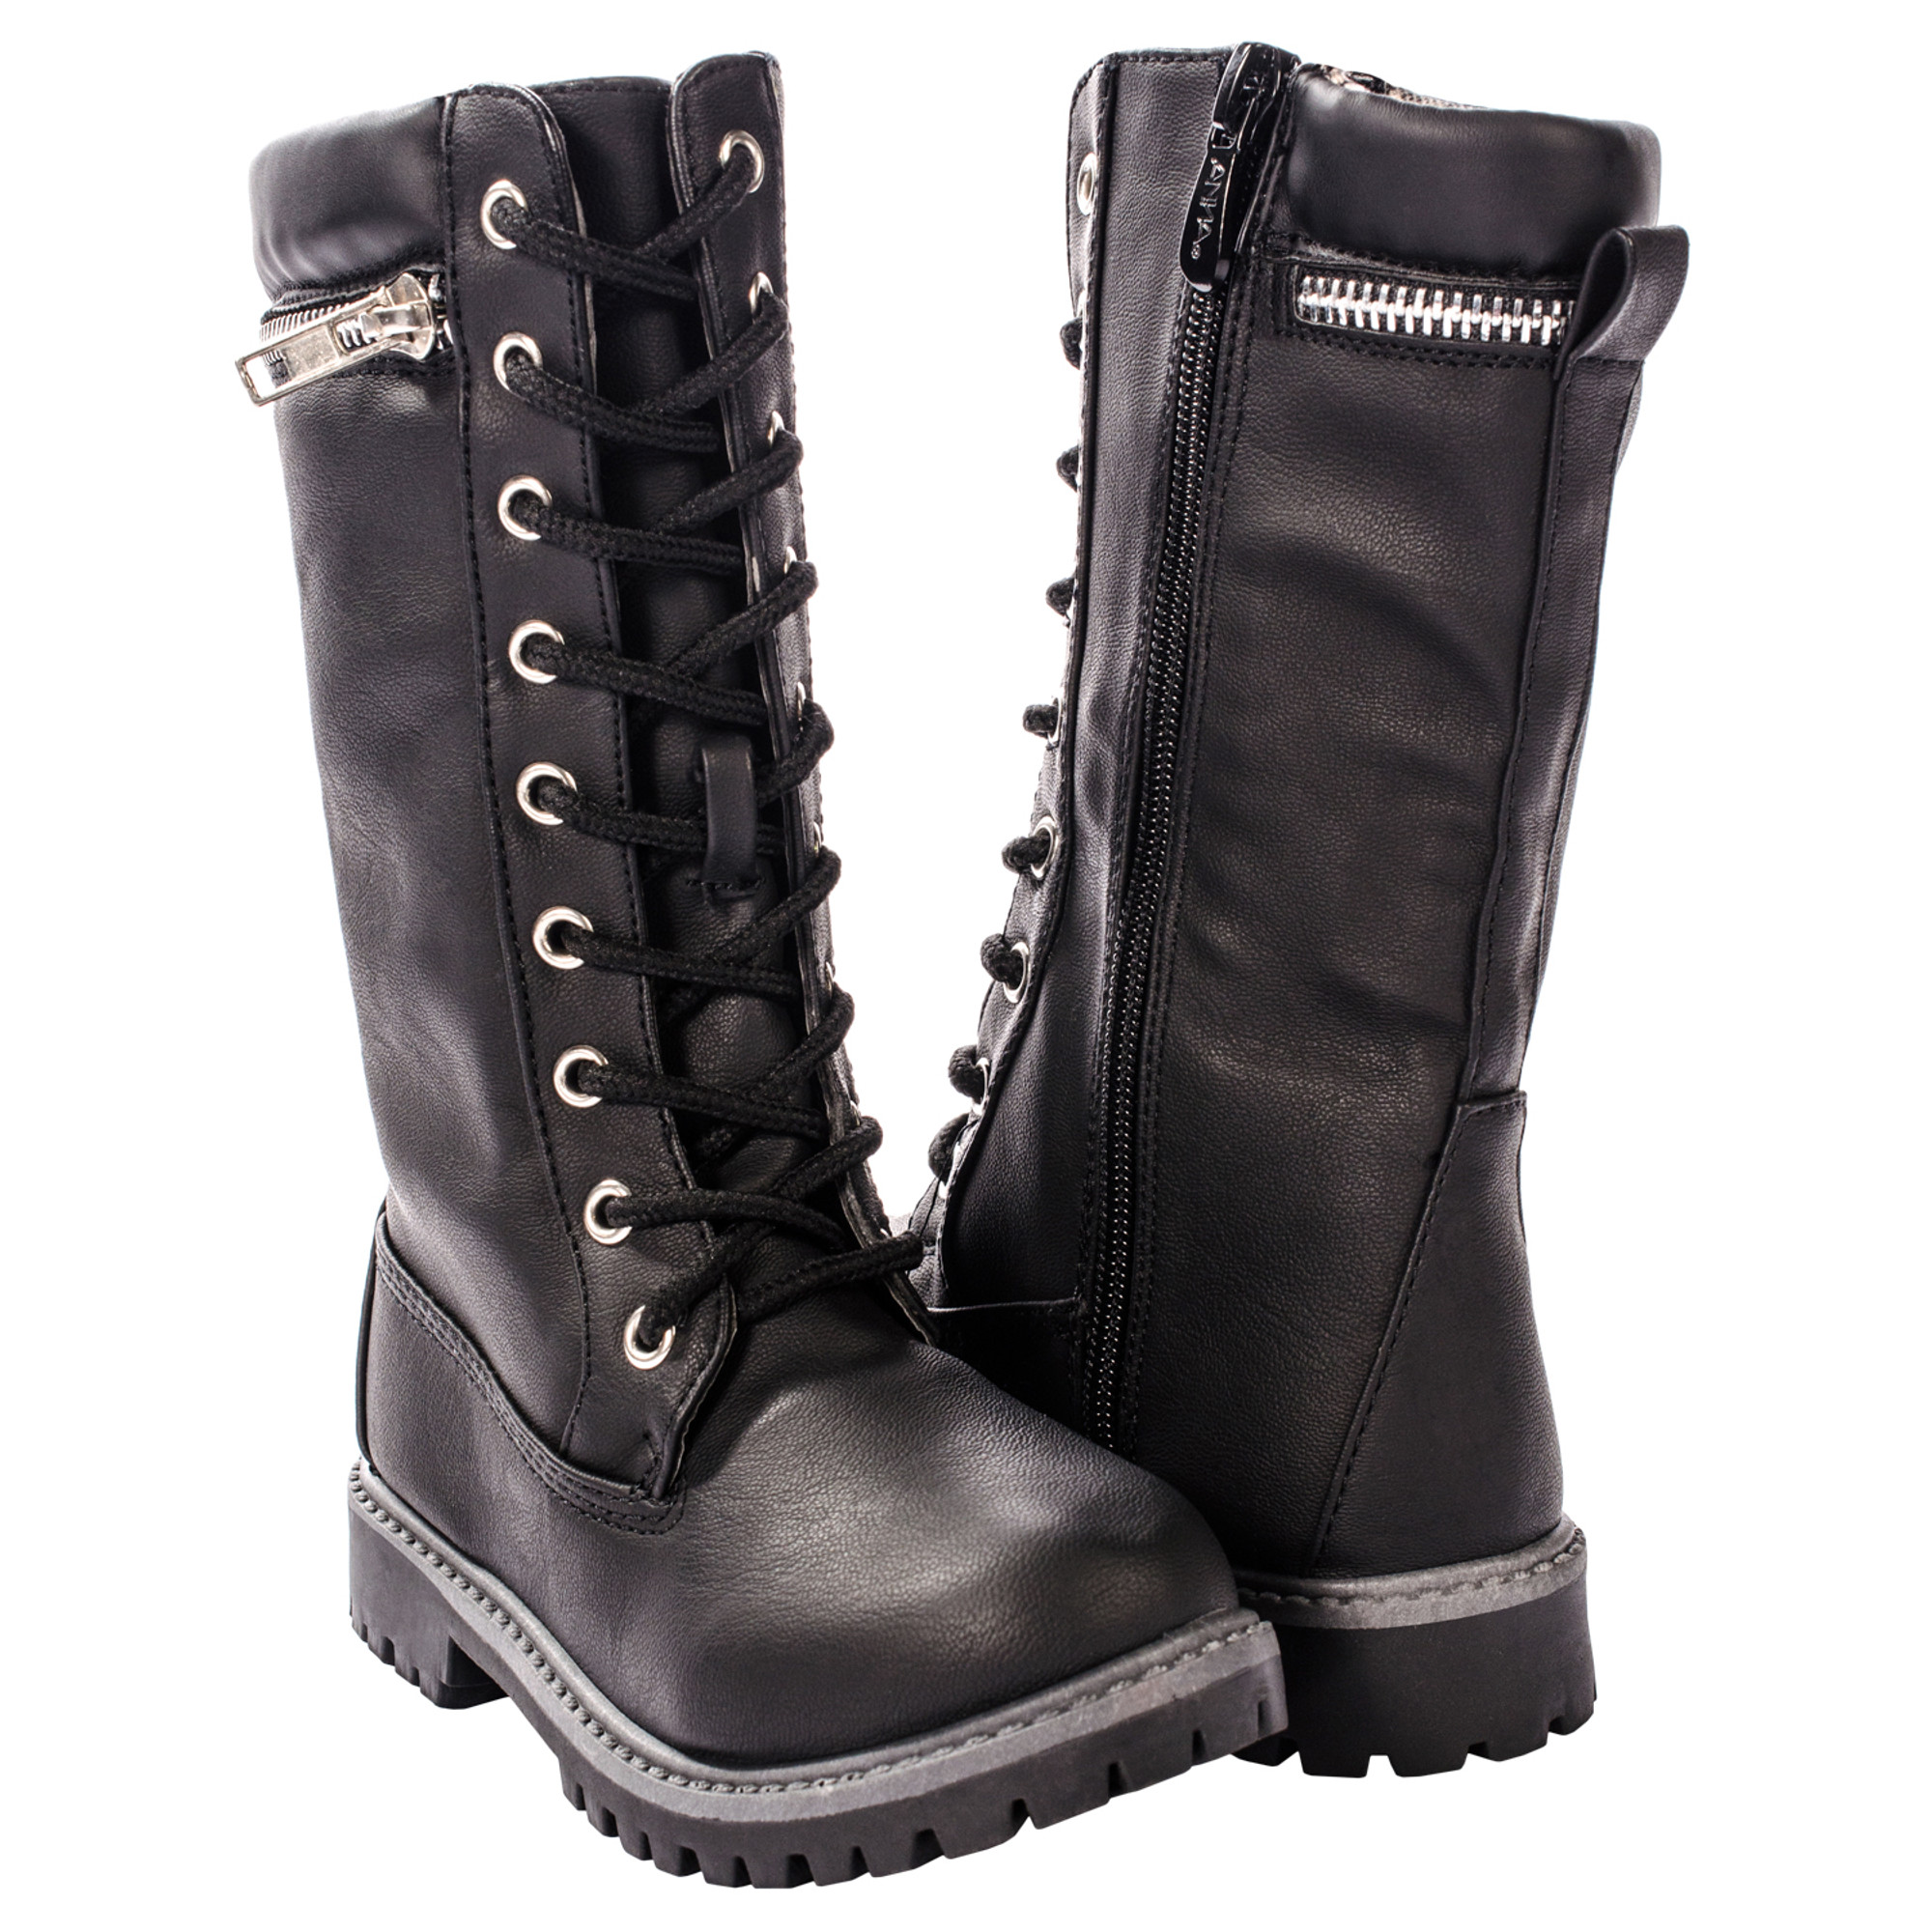 5dbe9b10507 Anna Dallas 17K Girls Lug Sole Lace Up Zip Ankle High Hiking Boots w/ Top  Zipper